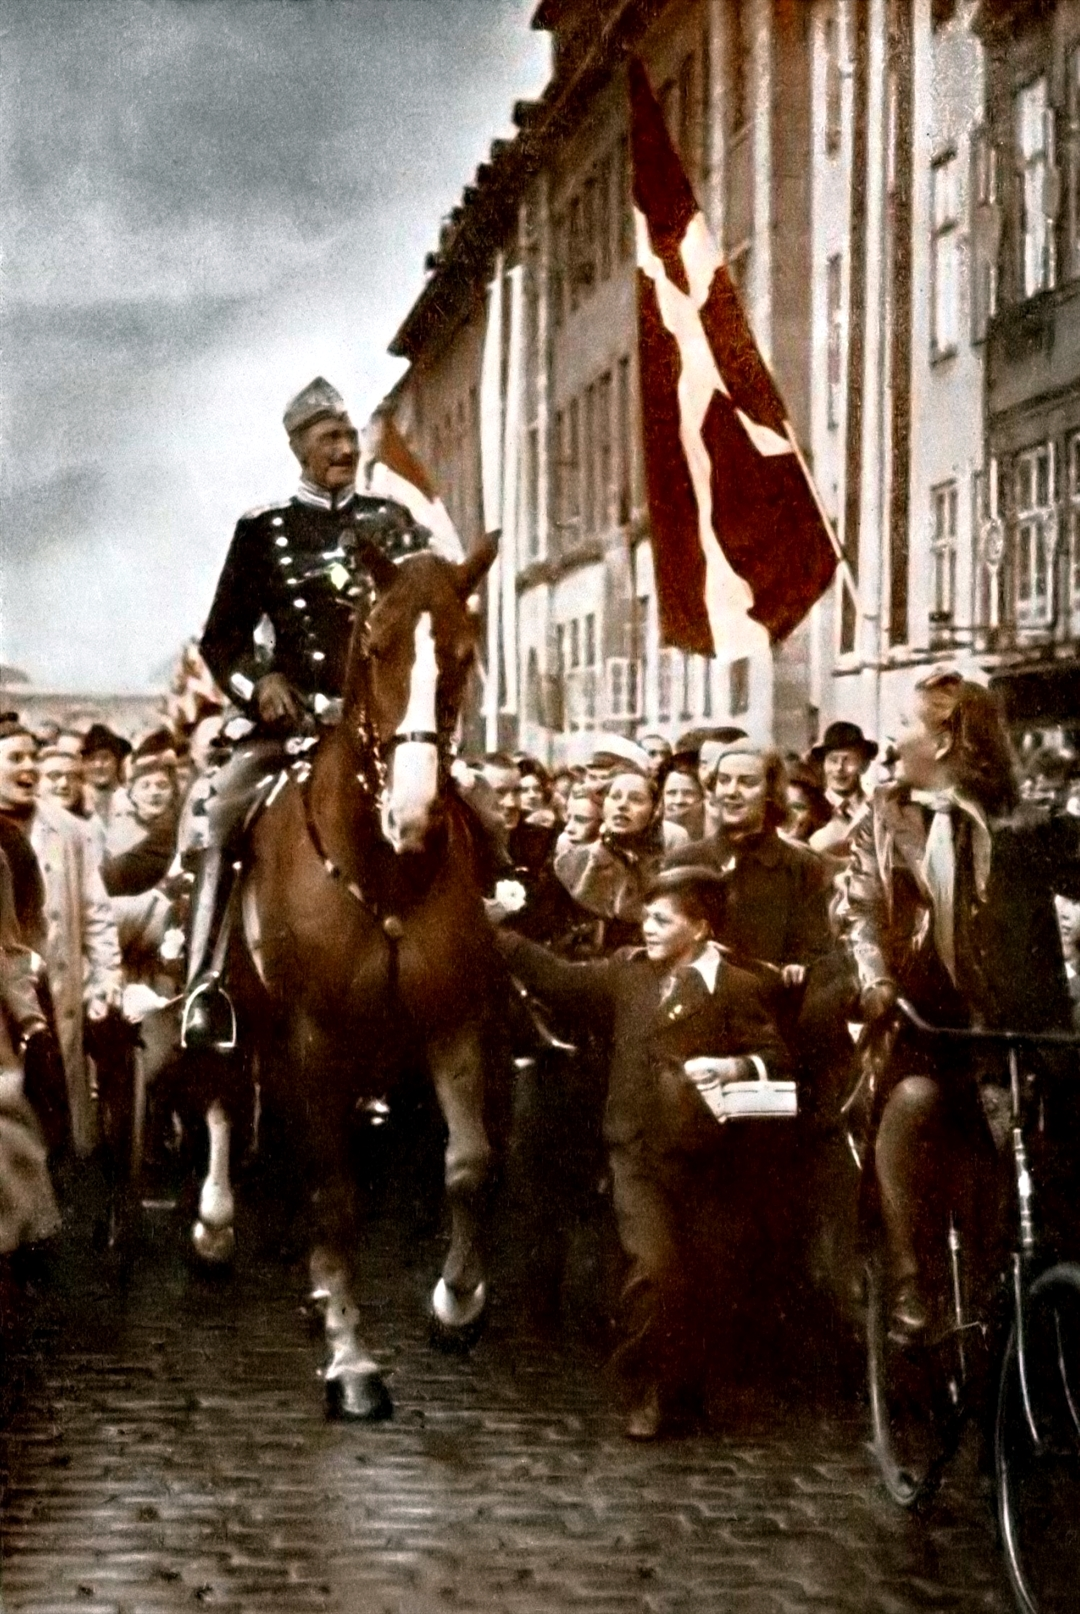 Denmark's beloved King Christian X on his 70th birthday in 1940.